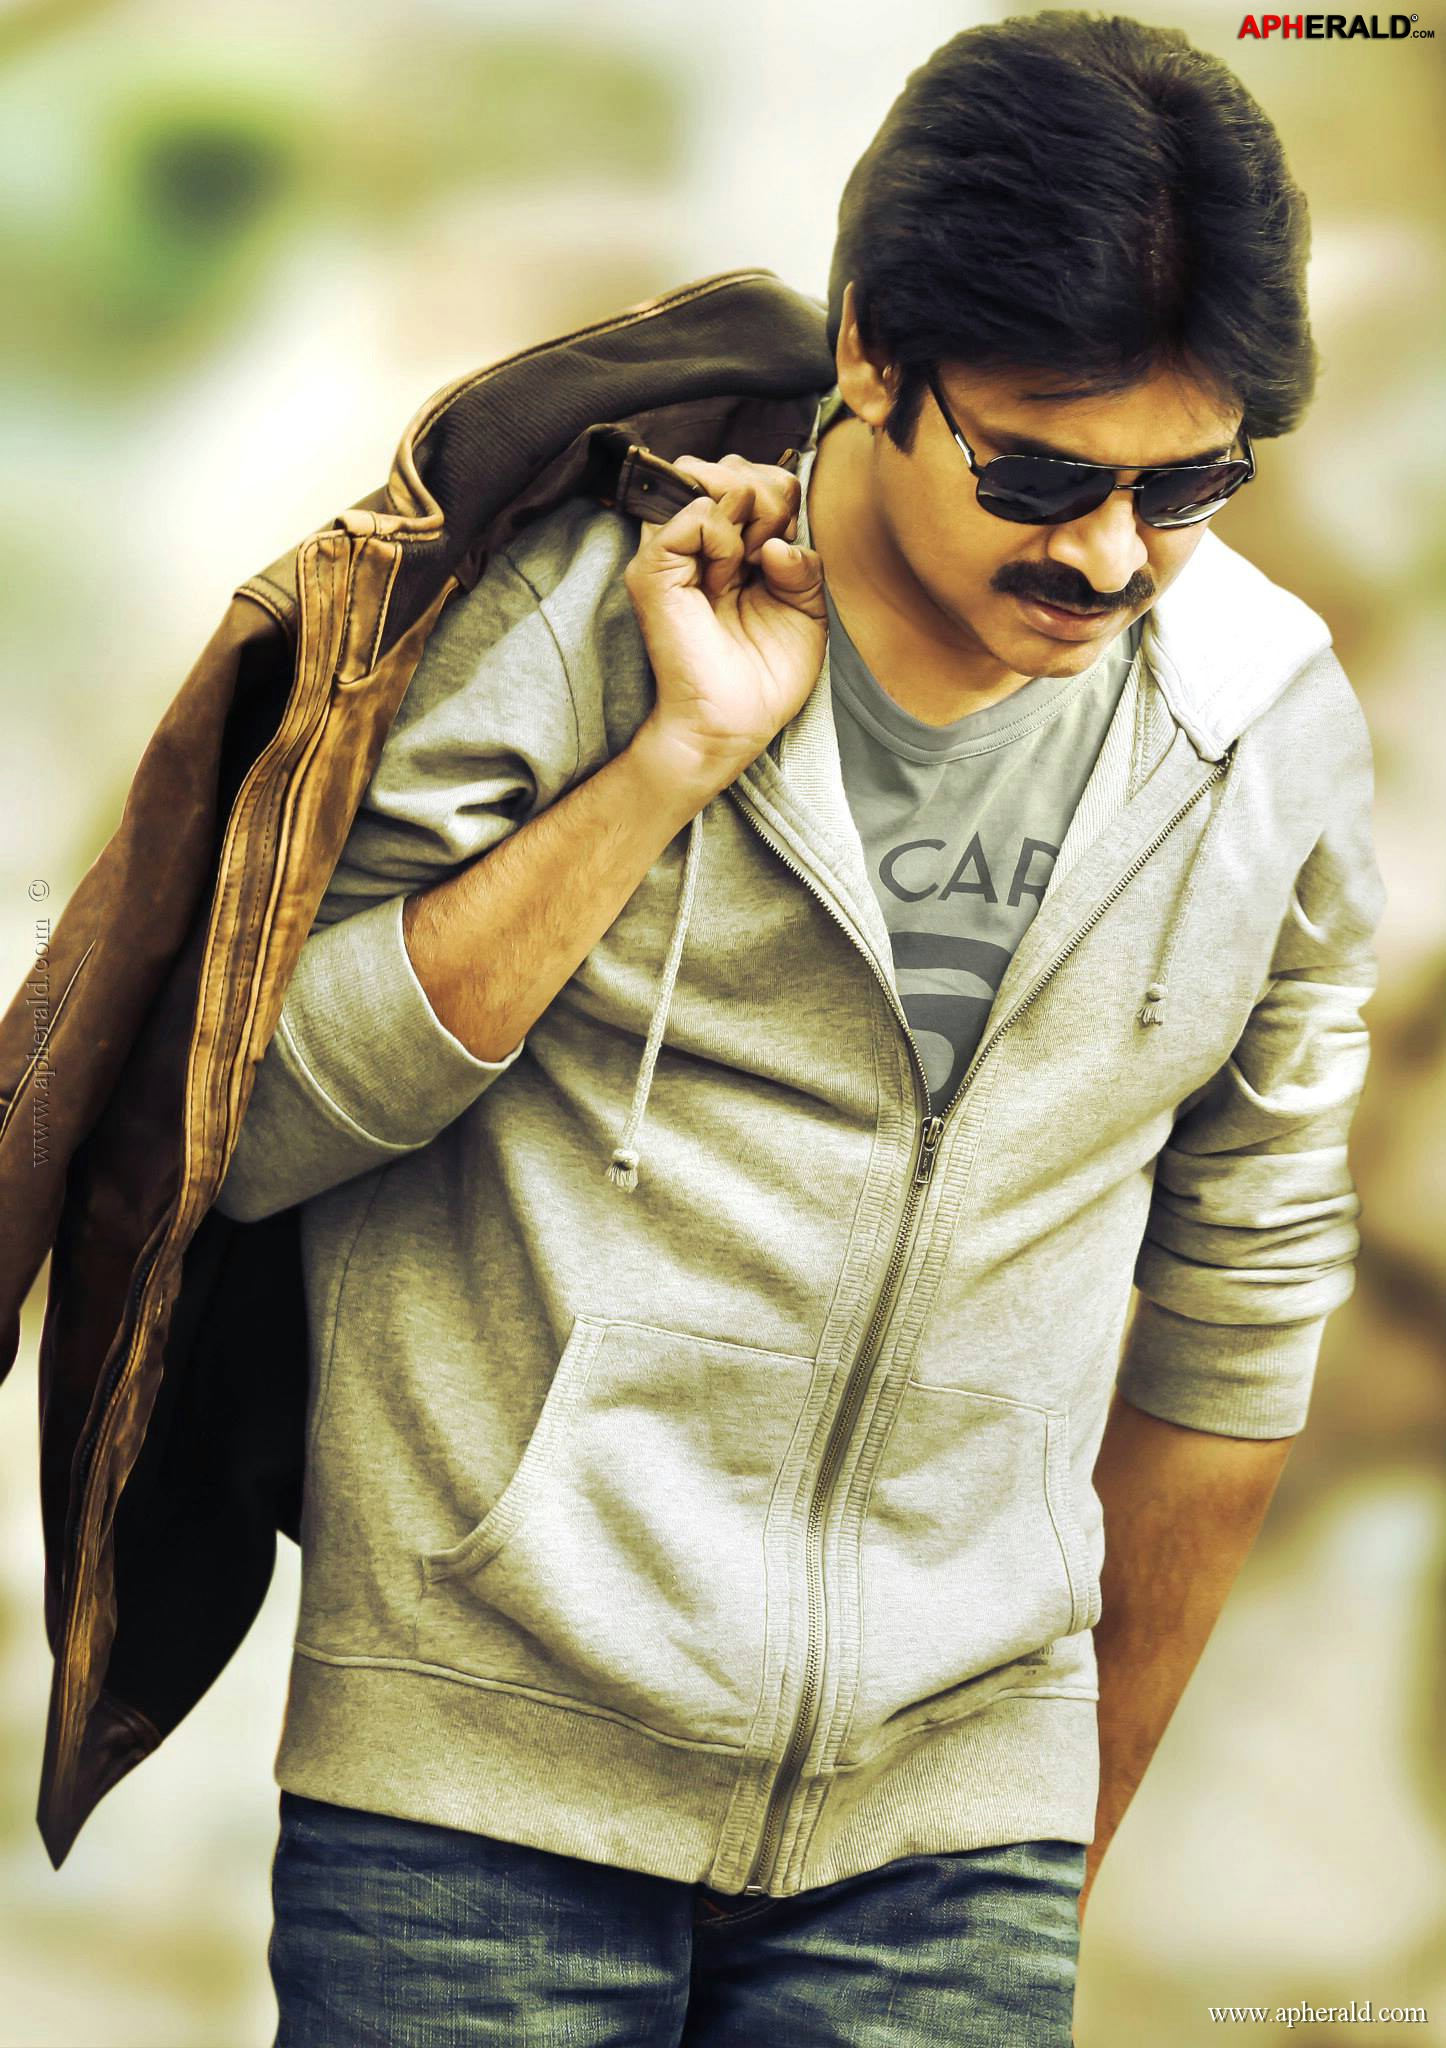 Pawan Rocking Stills in Attarintiki Daredi;Pawan Kalyan Stills in Attarintiki Daredi;Pawan Rocking Stills;Pawan Kalyan Pics;Pawan Kalyan Photos;Pawan Kalyan in Attarintiki Daredi;Pawan Kalyan Latest pics;Pawan Kalyan Latest Pics;Pawan Kalyan Latest Images;